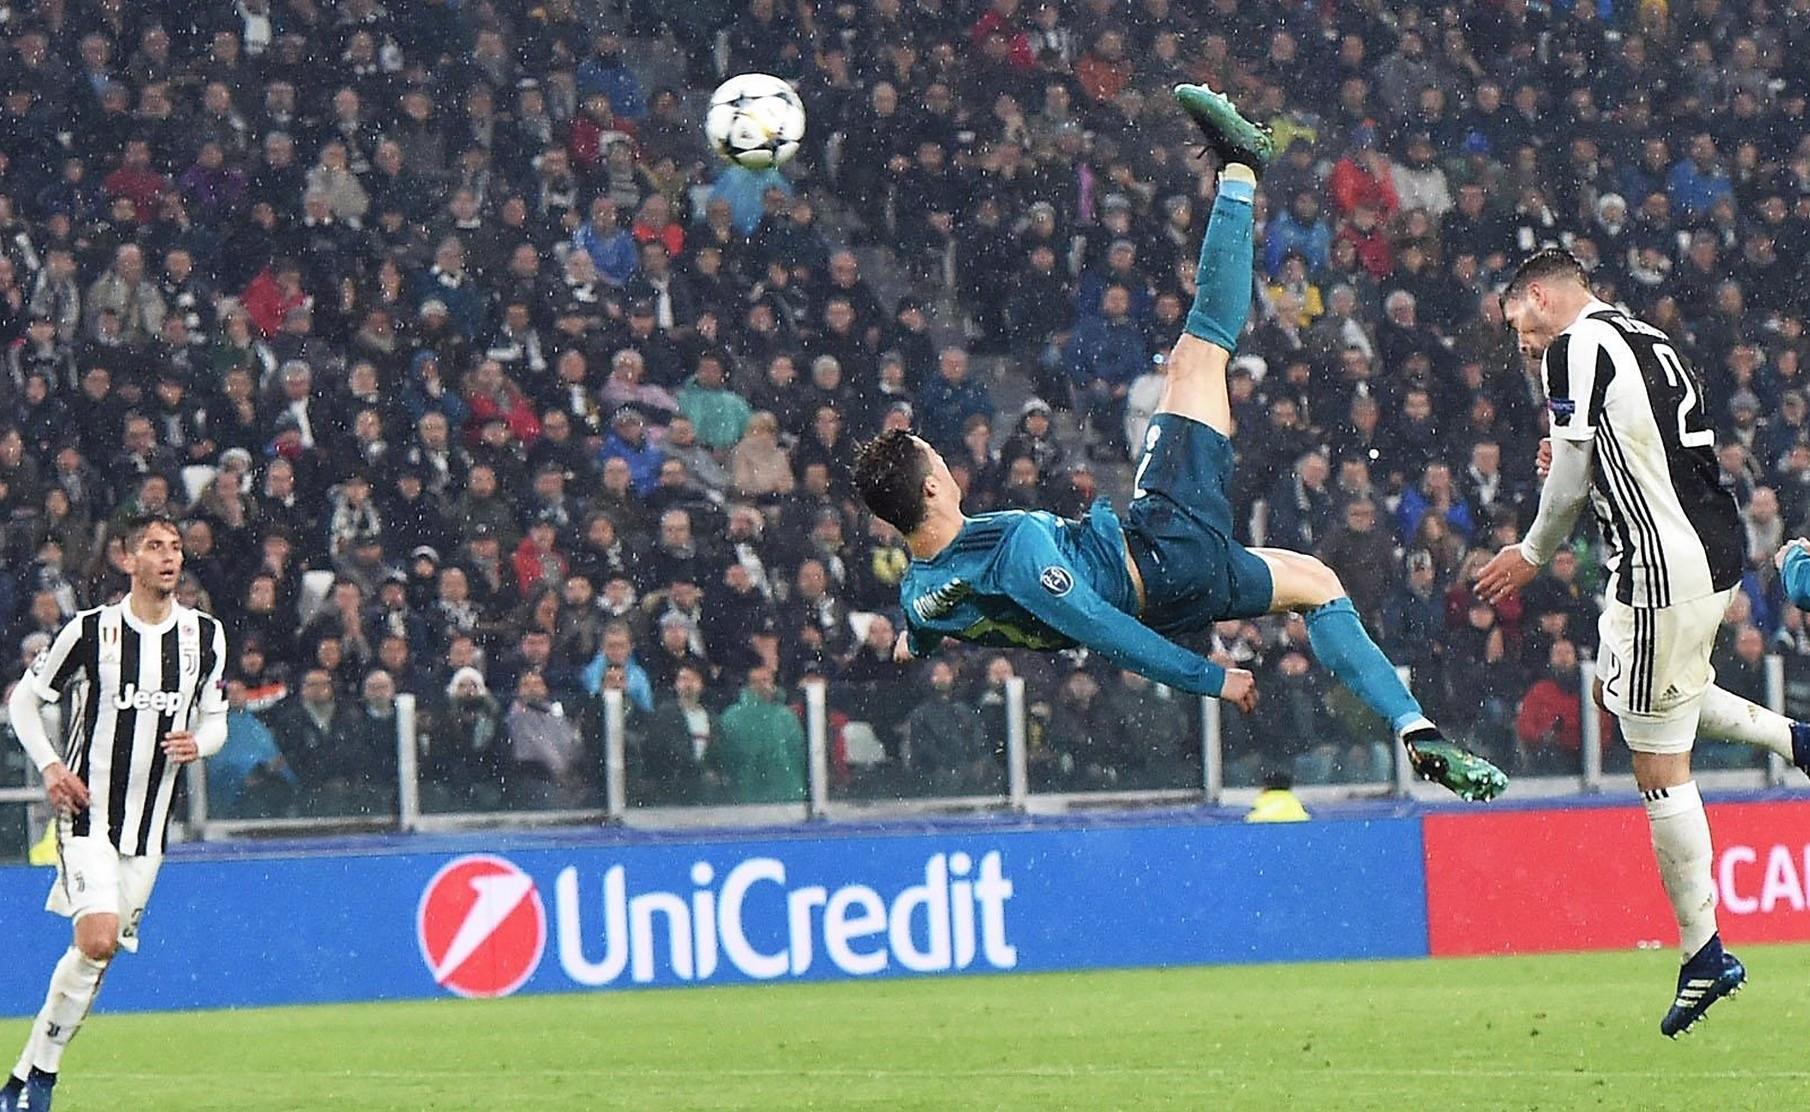 Real Madridu2019s Cristiano Ronaldo (C) scores the 2-0 goal during the UEFA Champions League quarter final first leg match against Juventus at Allianz stadium in Turin, Apr. 3.